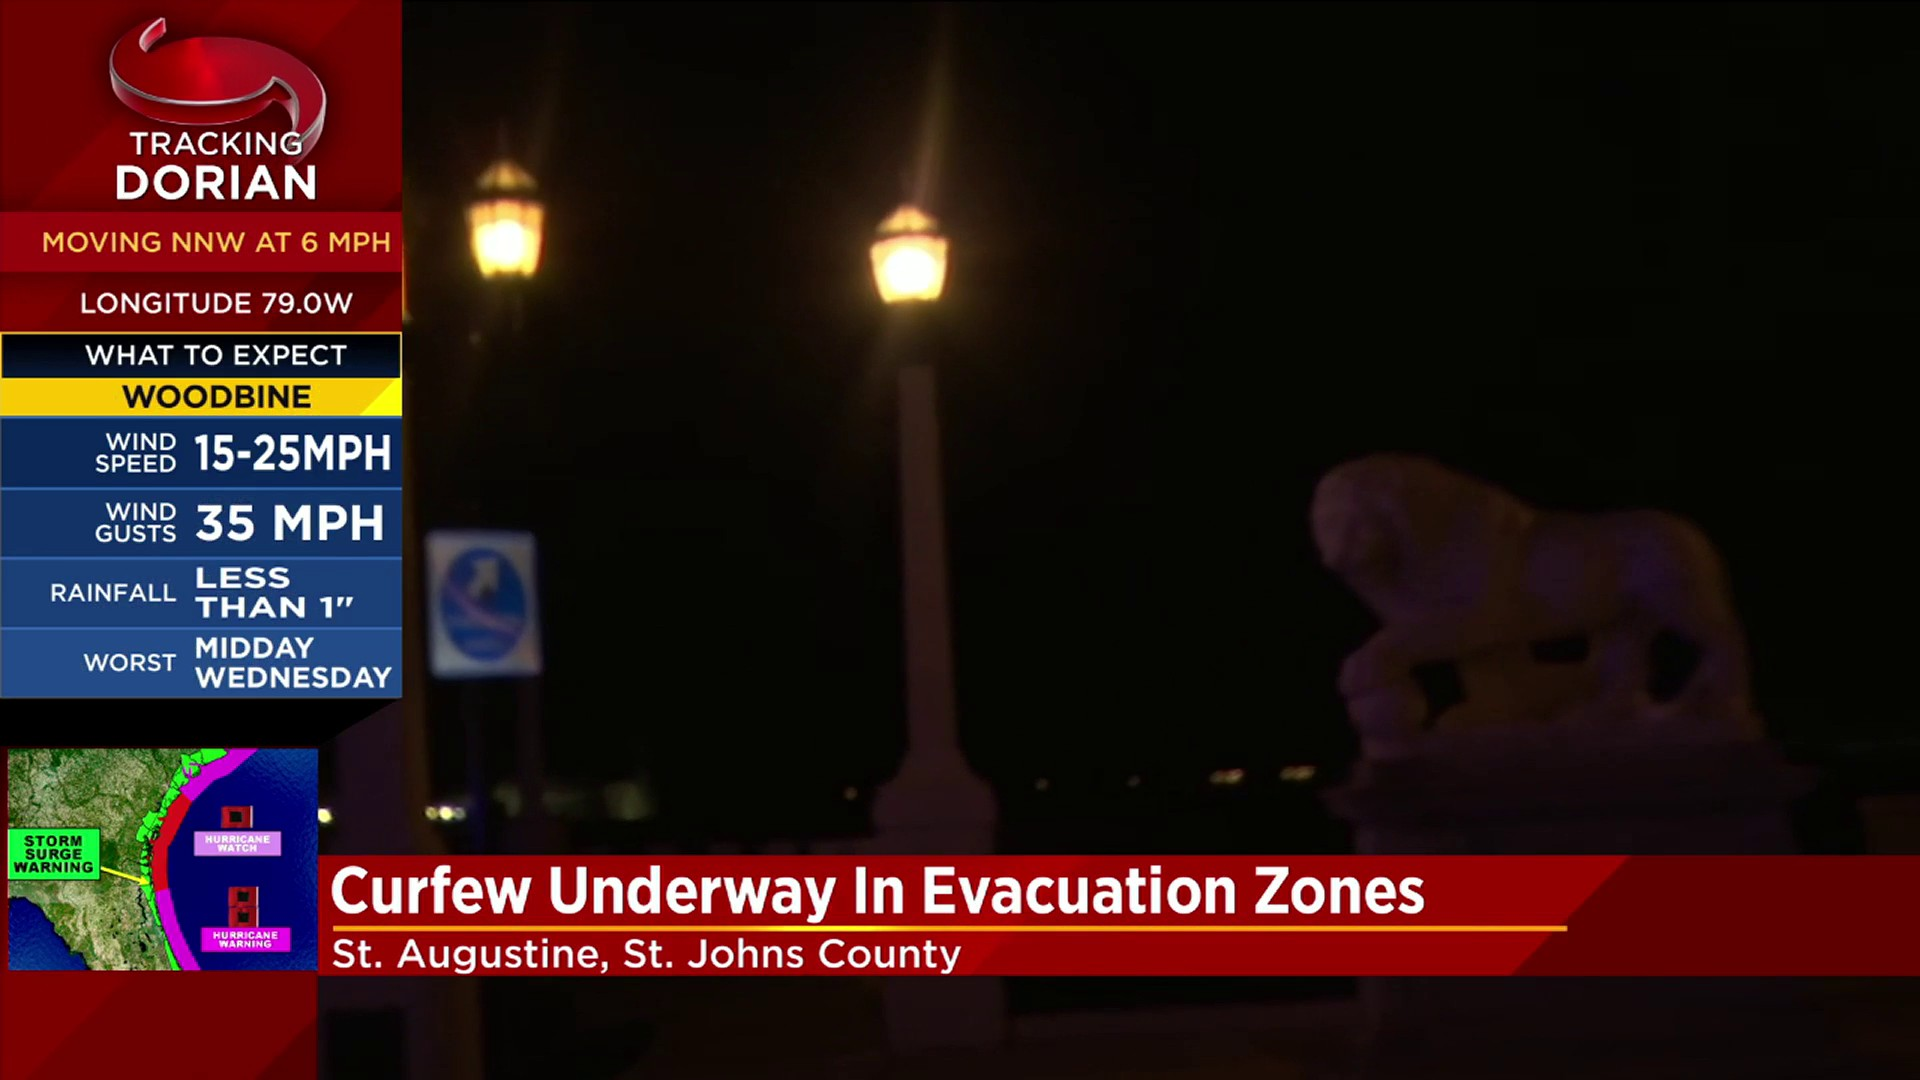 Nightly curfew for parts of St. Augustine during Hurricane Dorian